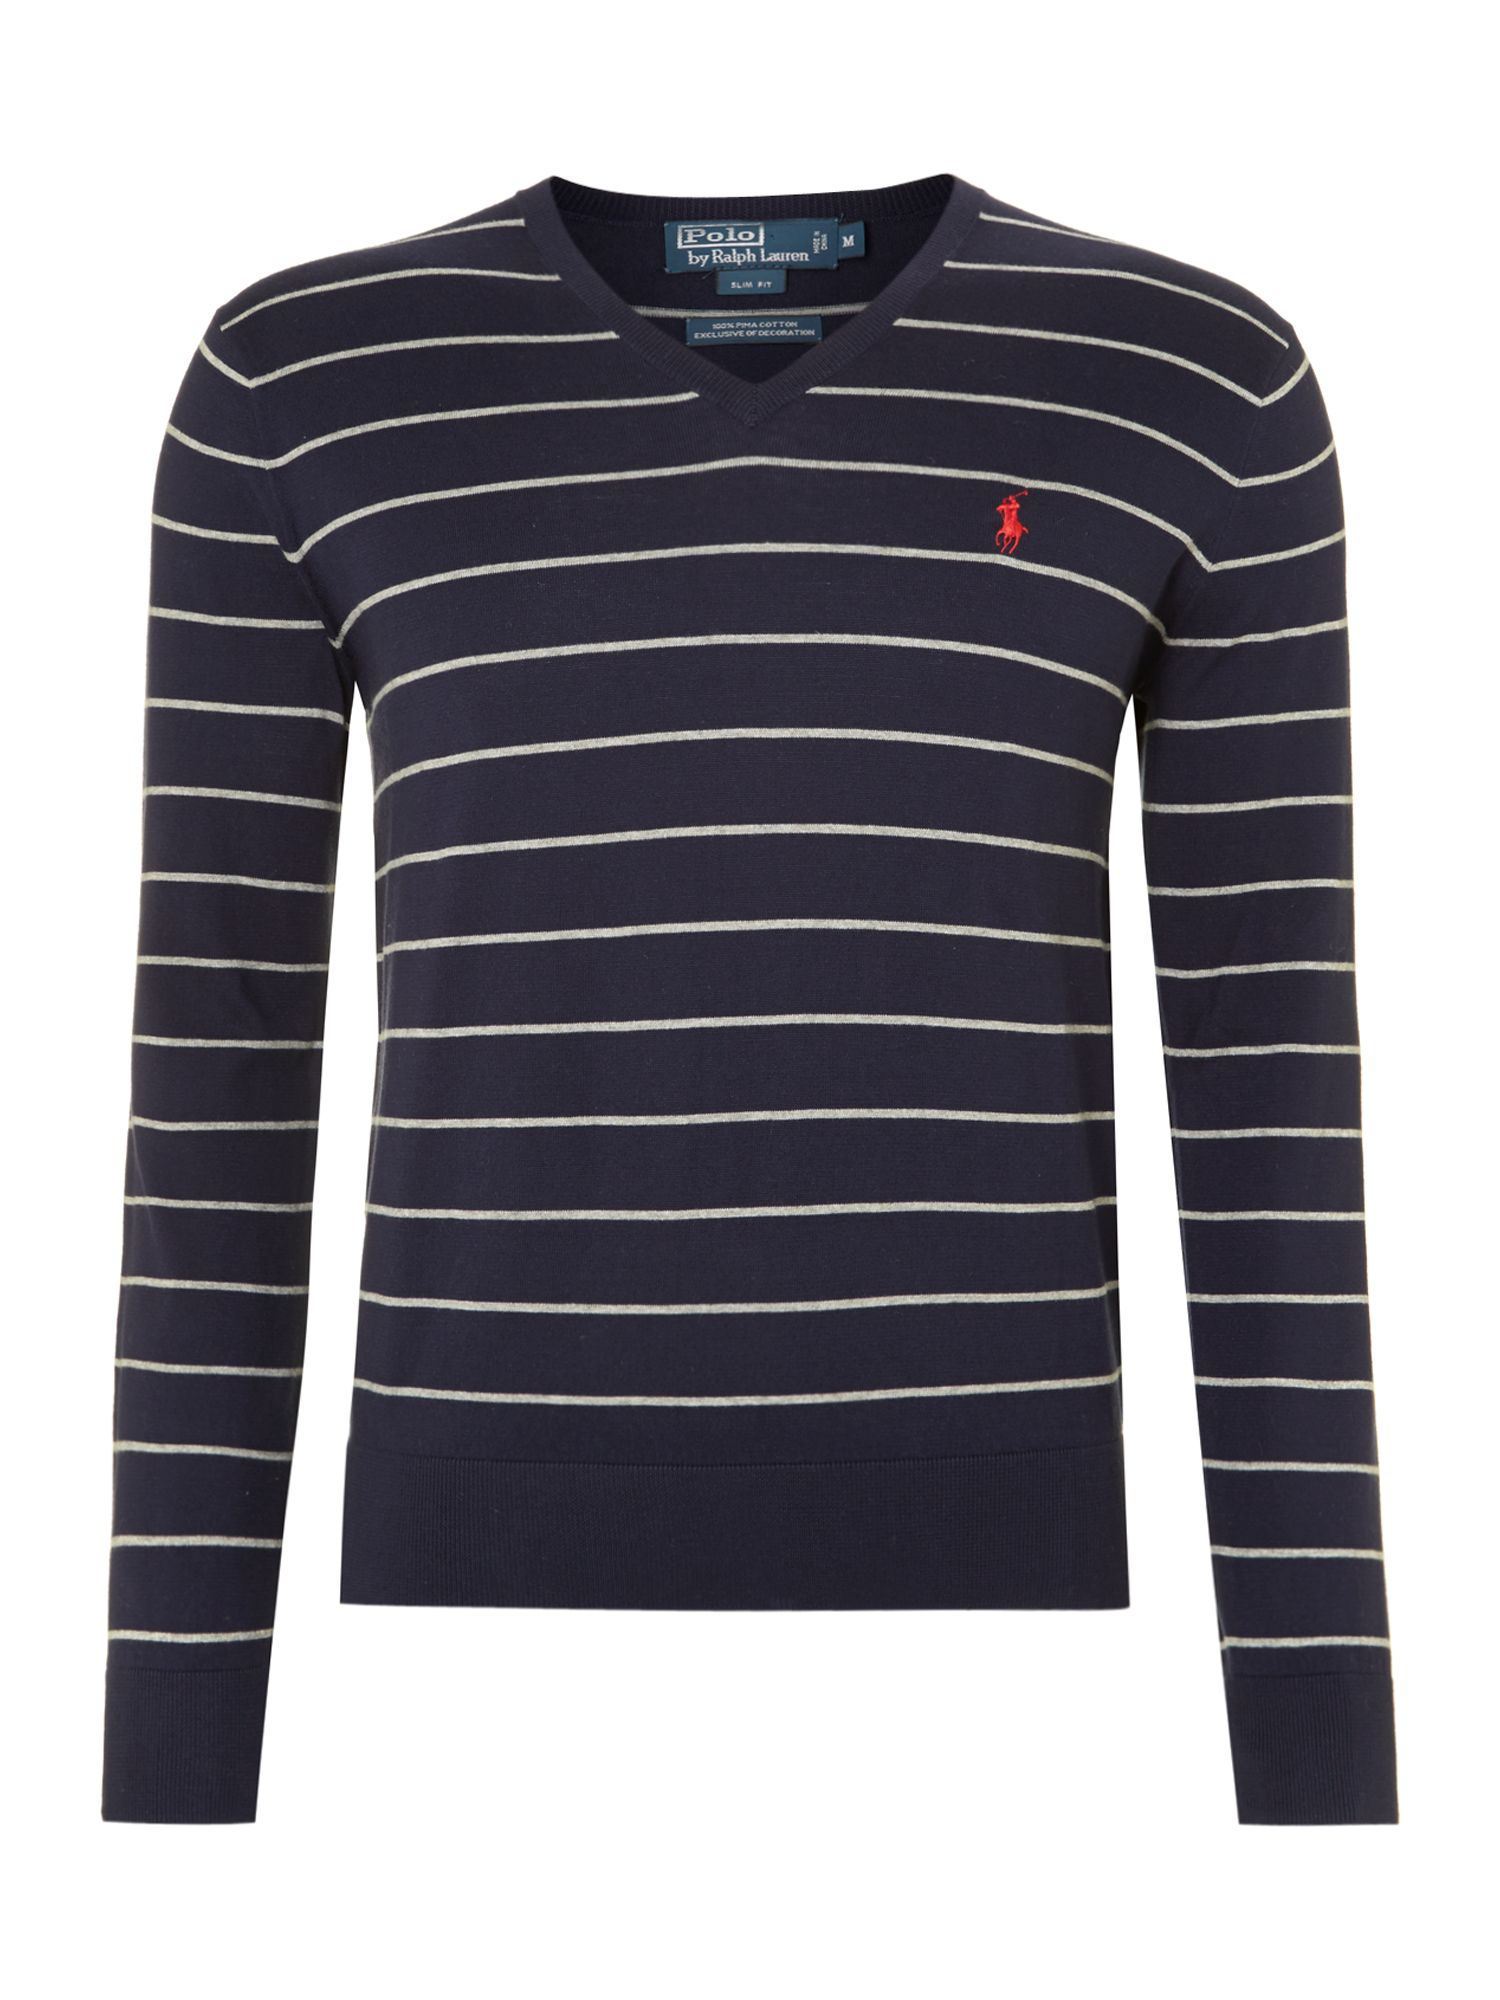 Pima cotton v neck striped jumper